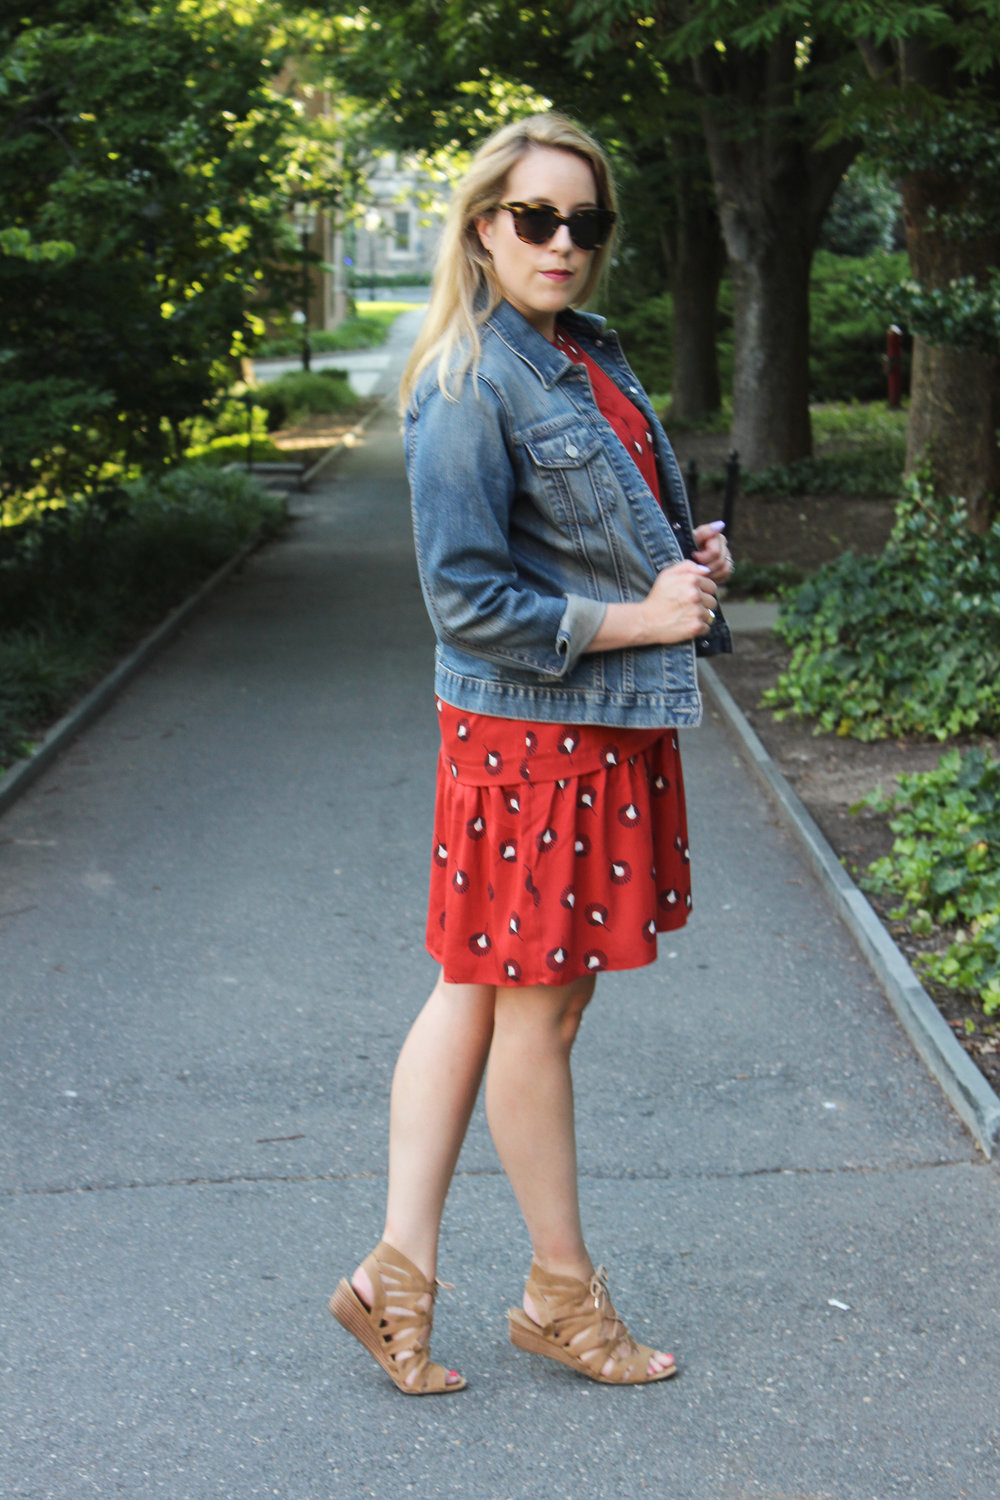 Effortless Back-to-School style for teachers